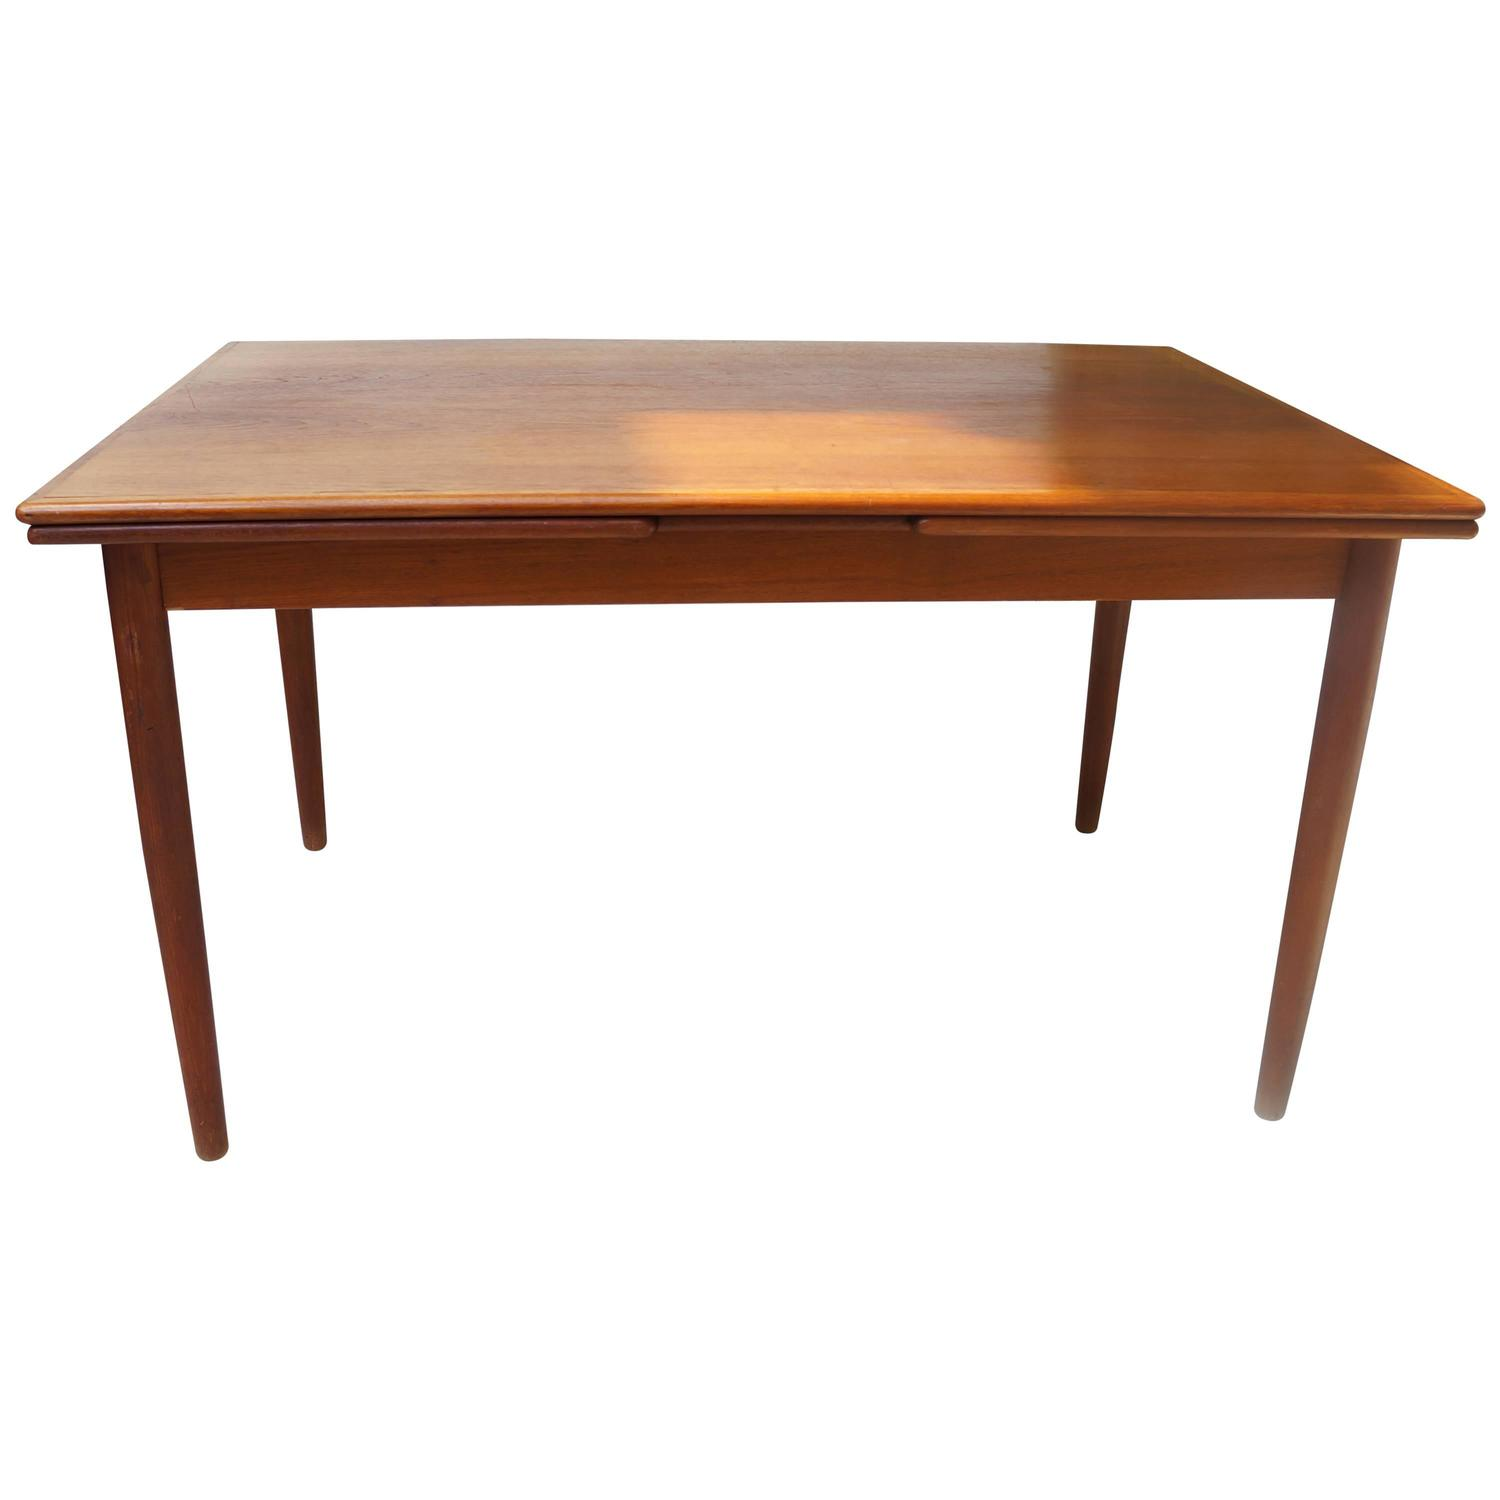 Scandinavian danish modern 1950s rectangular teak wooden for Contemporary rectangular dining table